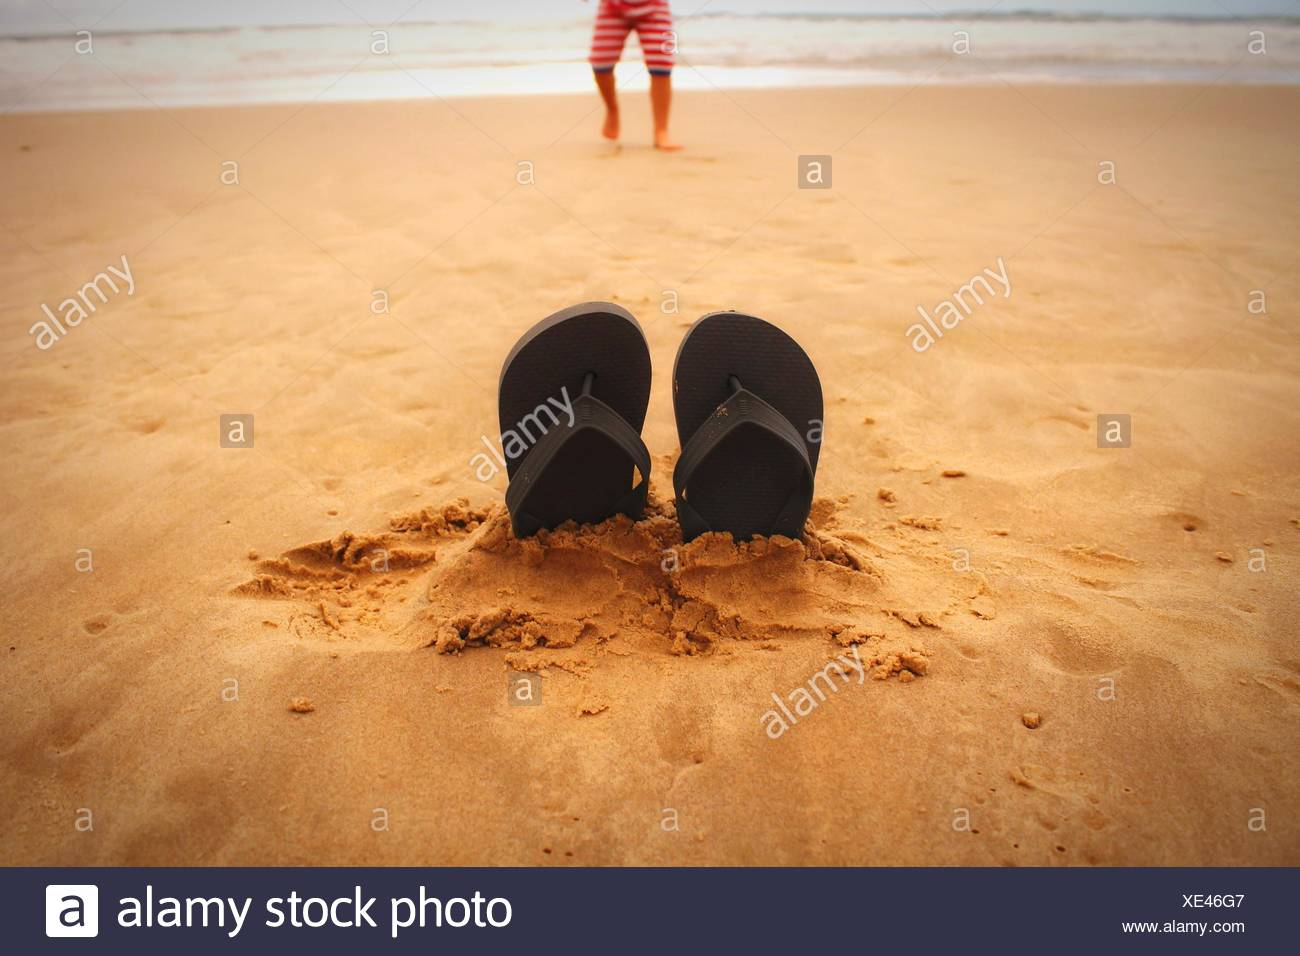 Close-Up Of Slippers On Sand At Beach - Stock Image